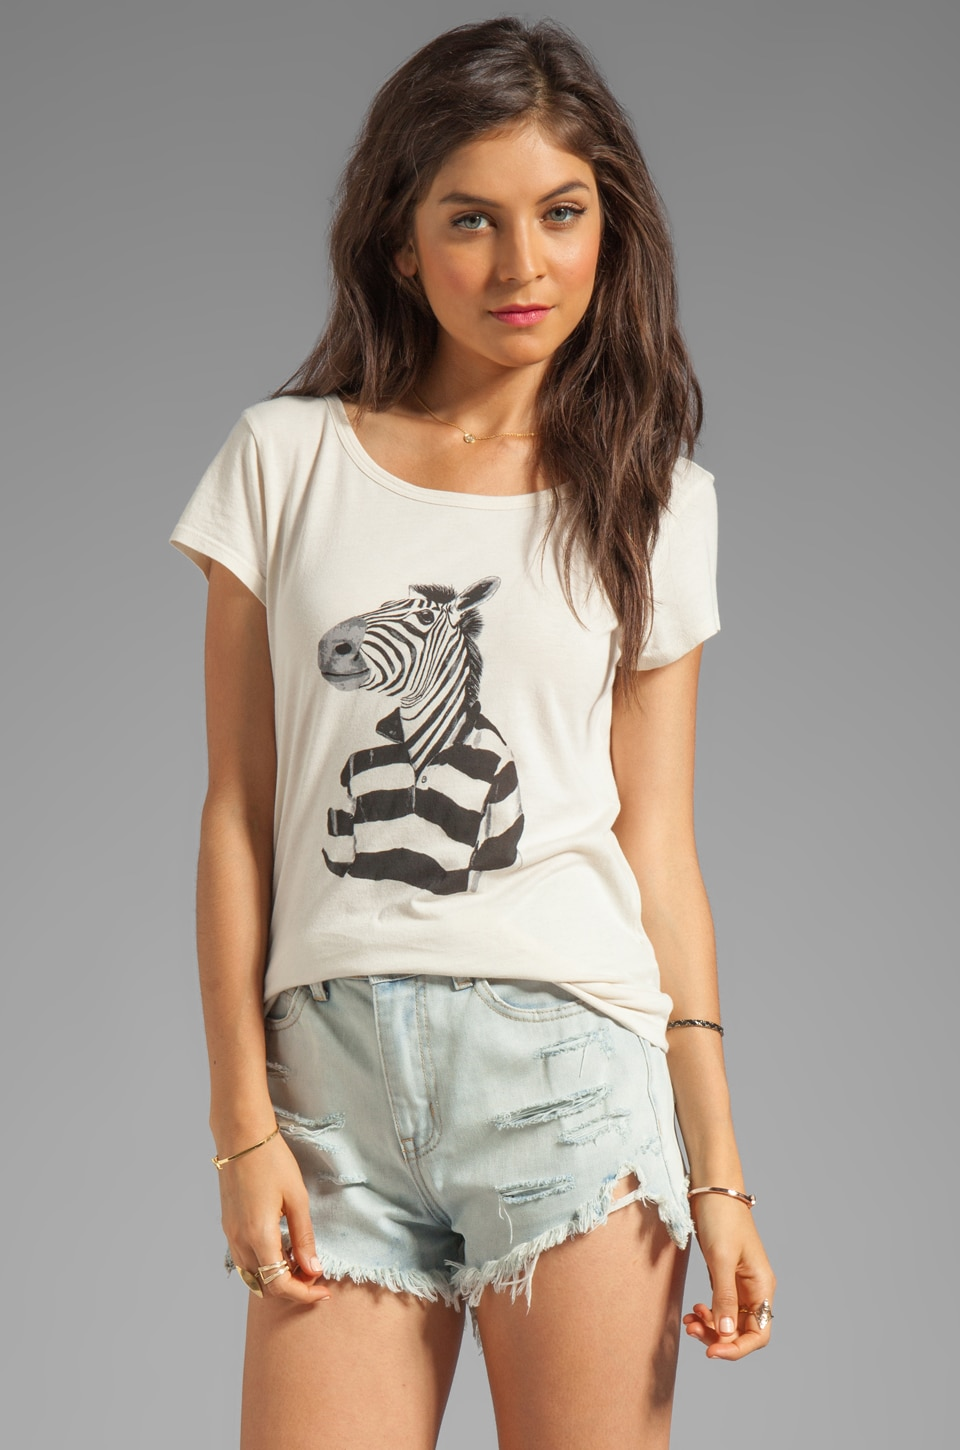 Marc by Marc Jacobs Mr. Zebra Tee in Antique White